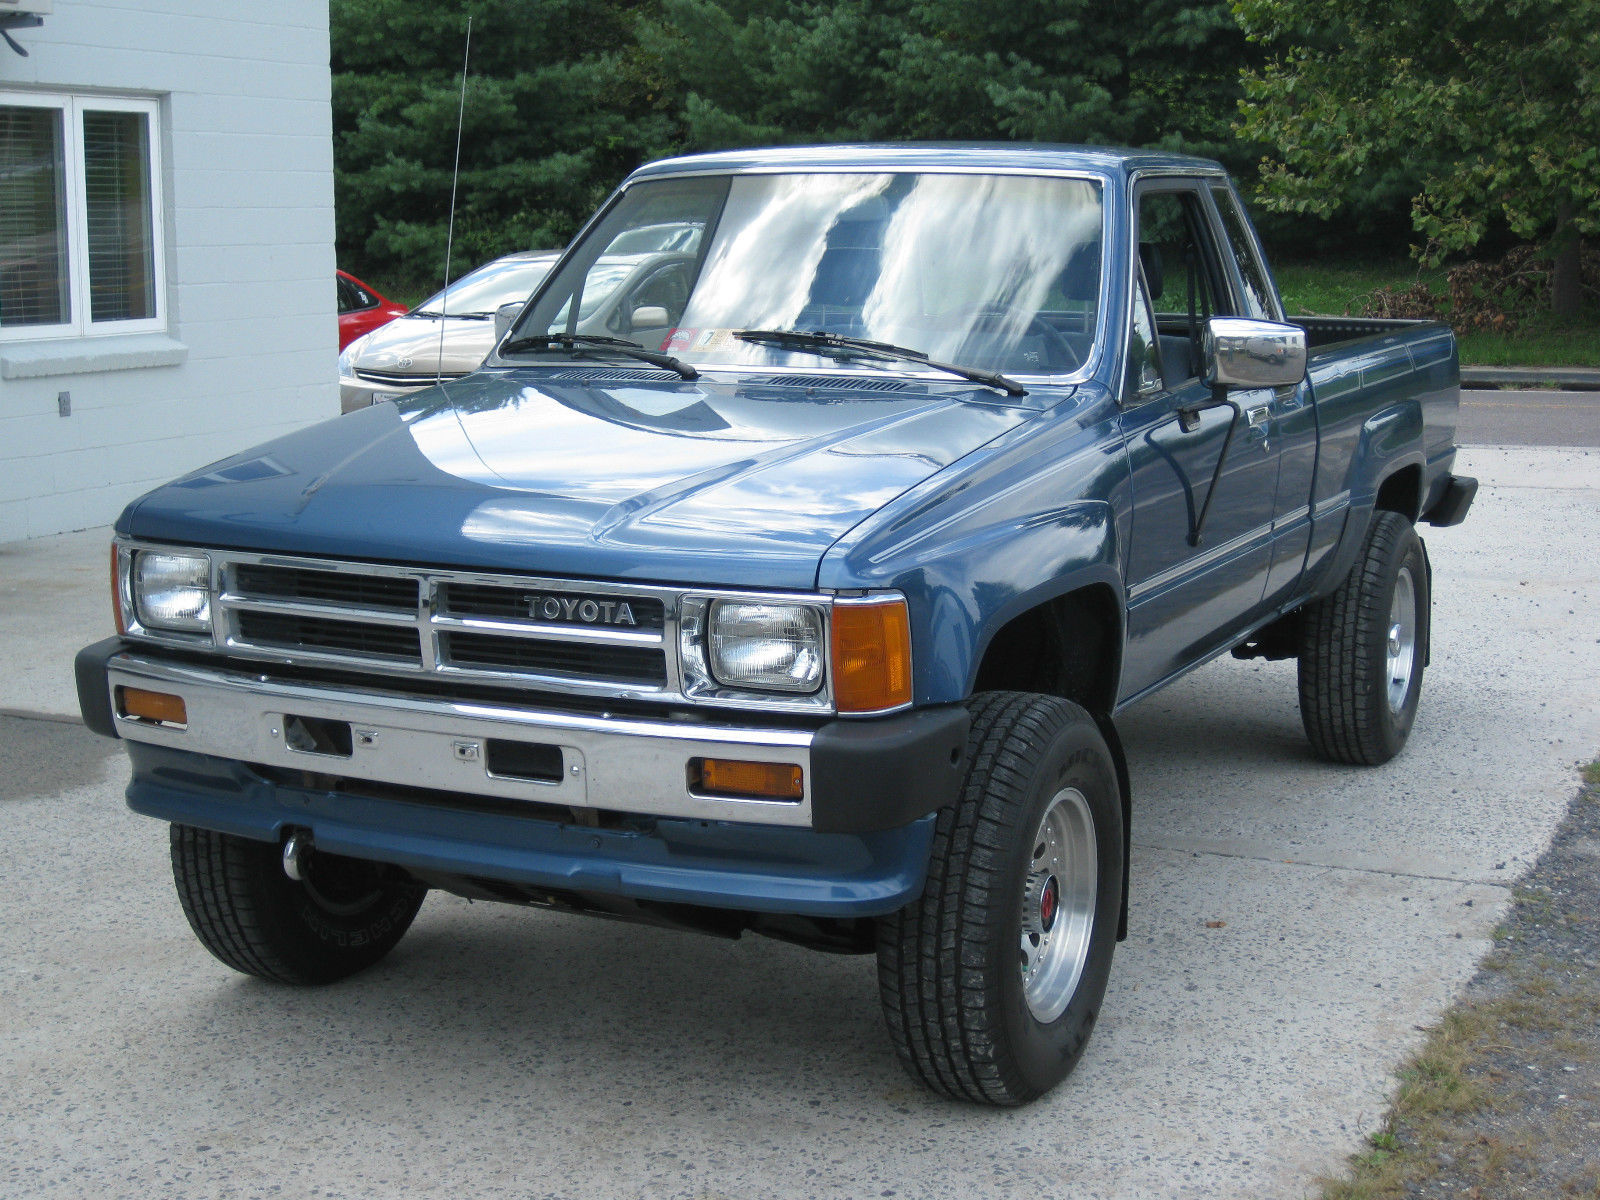 rare blue 1988 toyota pickup extra cab auto 4wd very clean. Black Bedroom Furniture Sets. Home Design Ideas